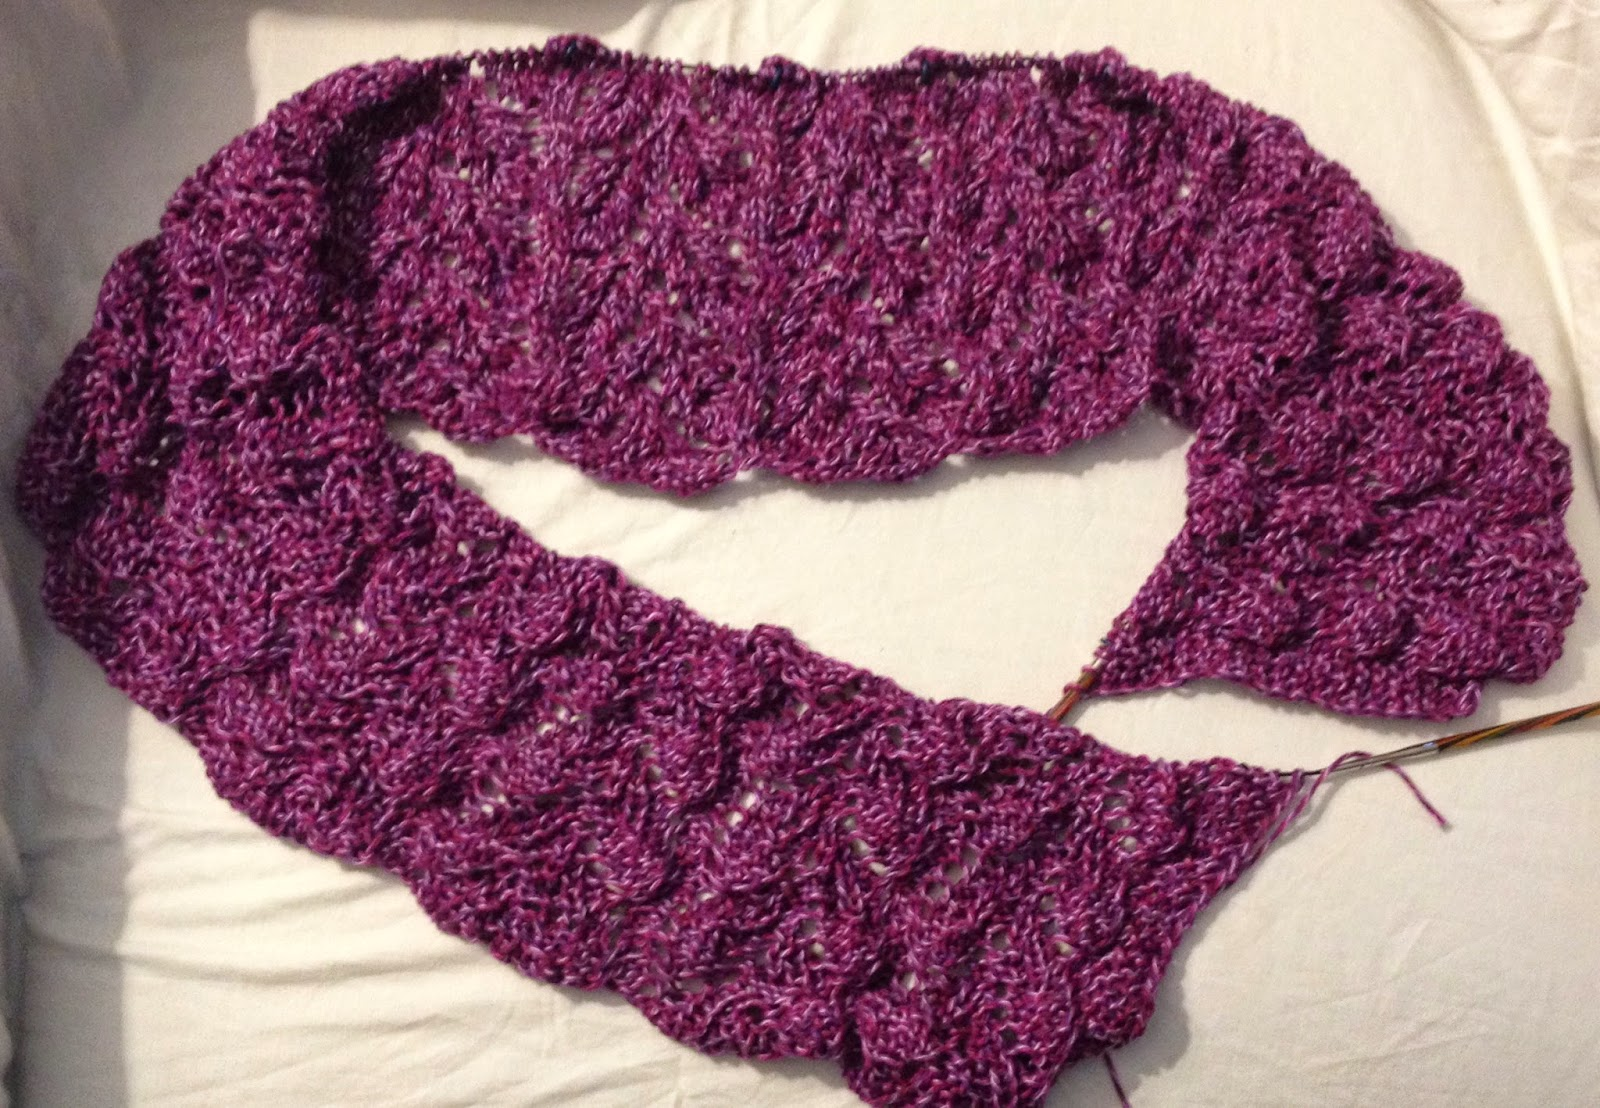 Rose Garden Shawl From Knit N Purl - Day 4 5